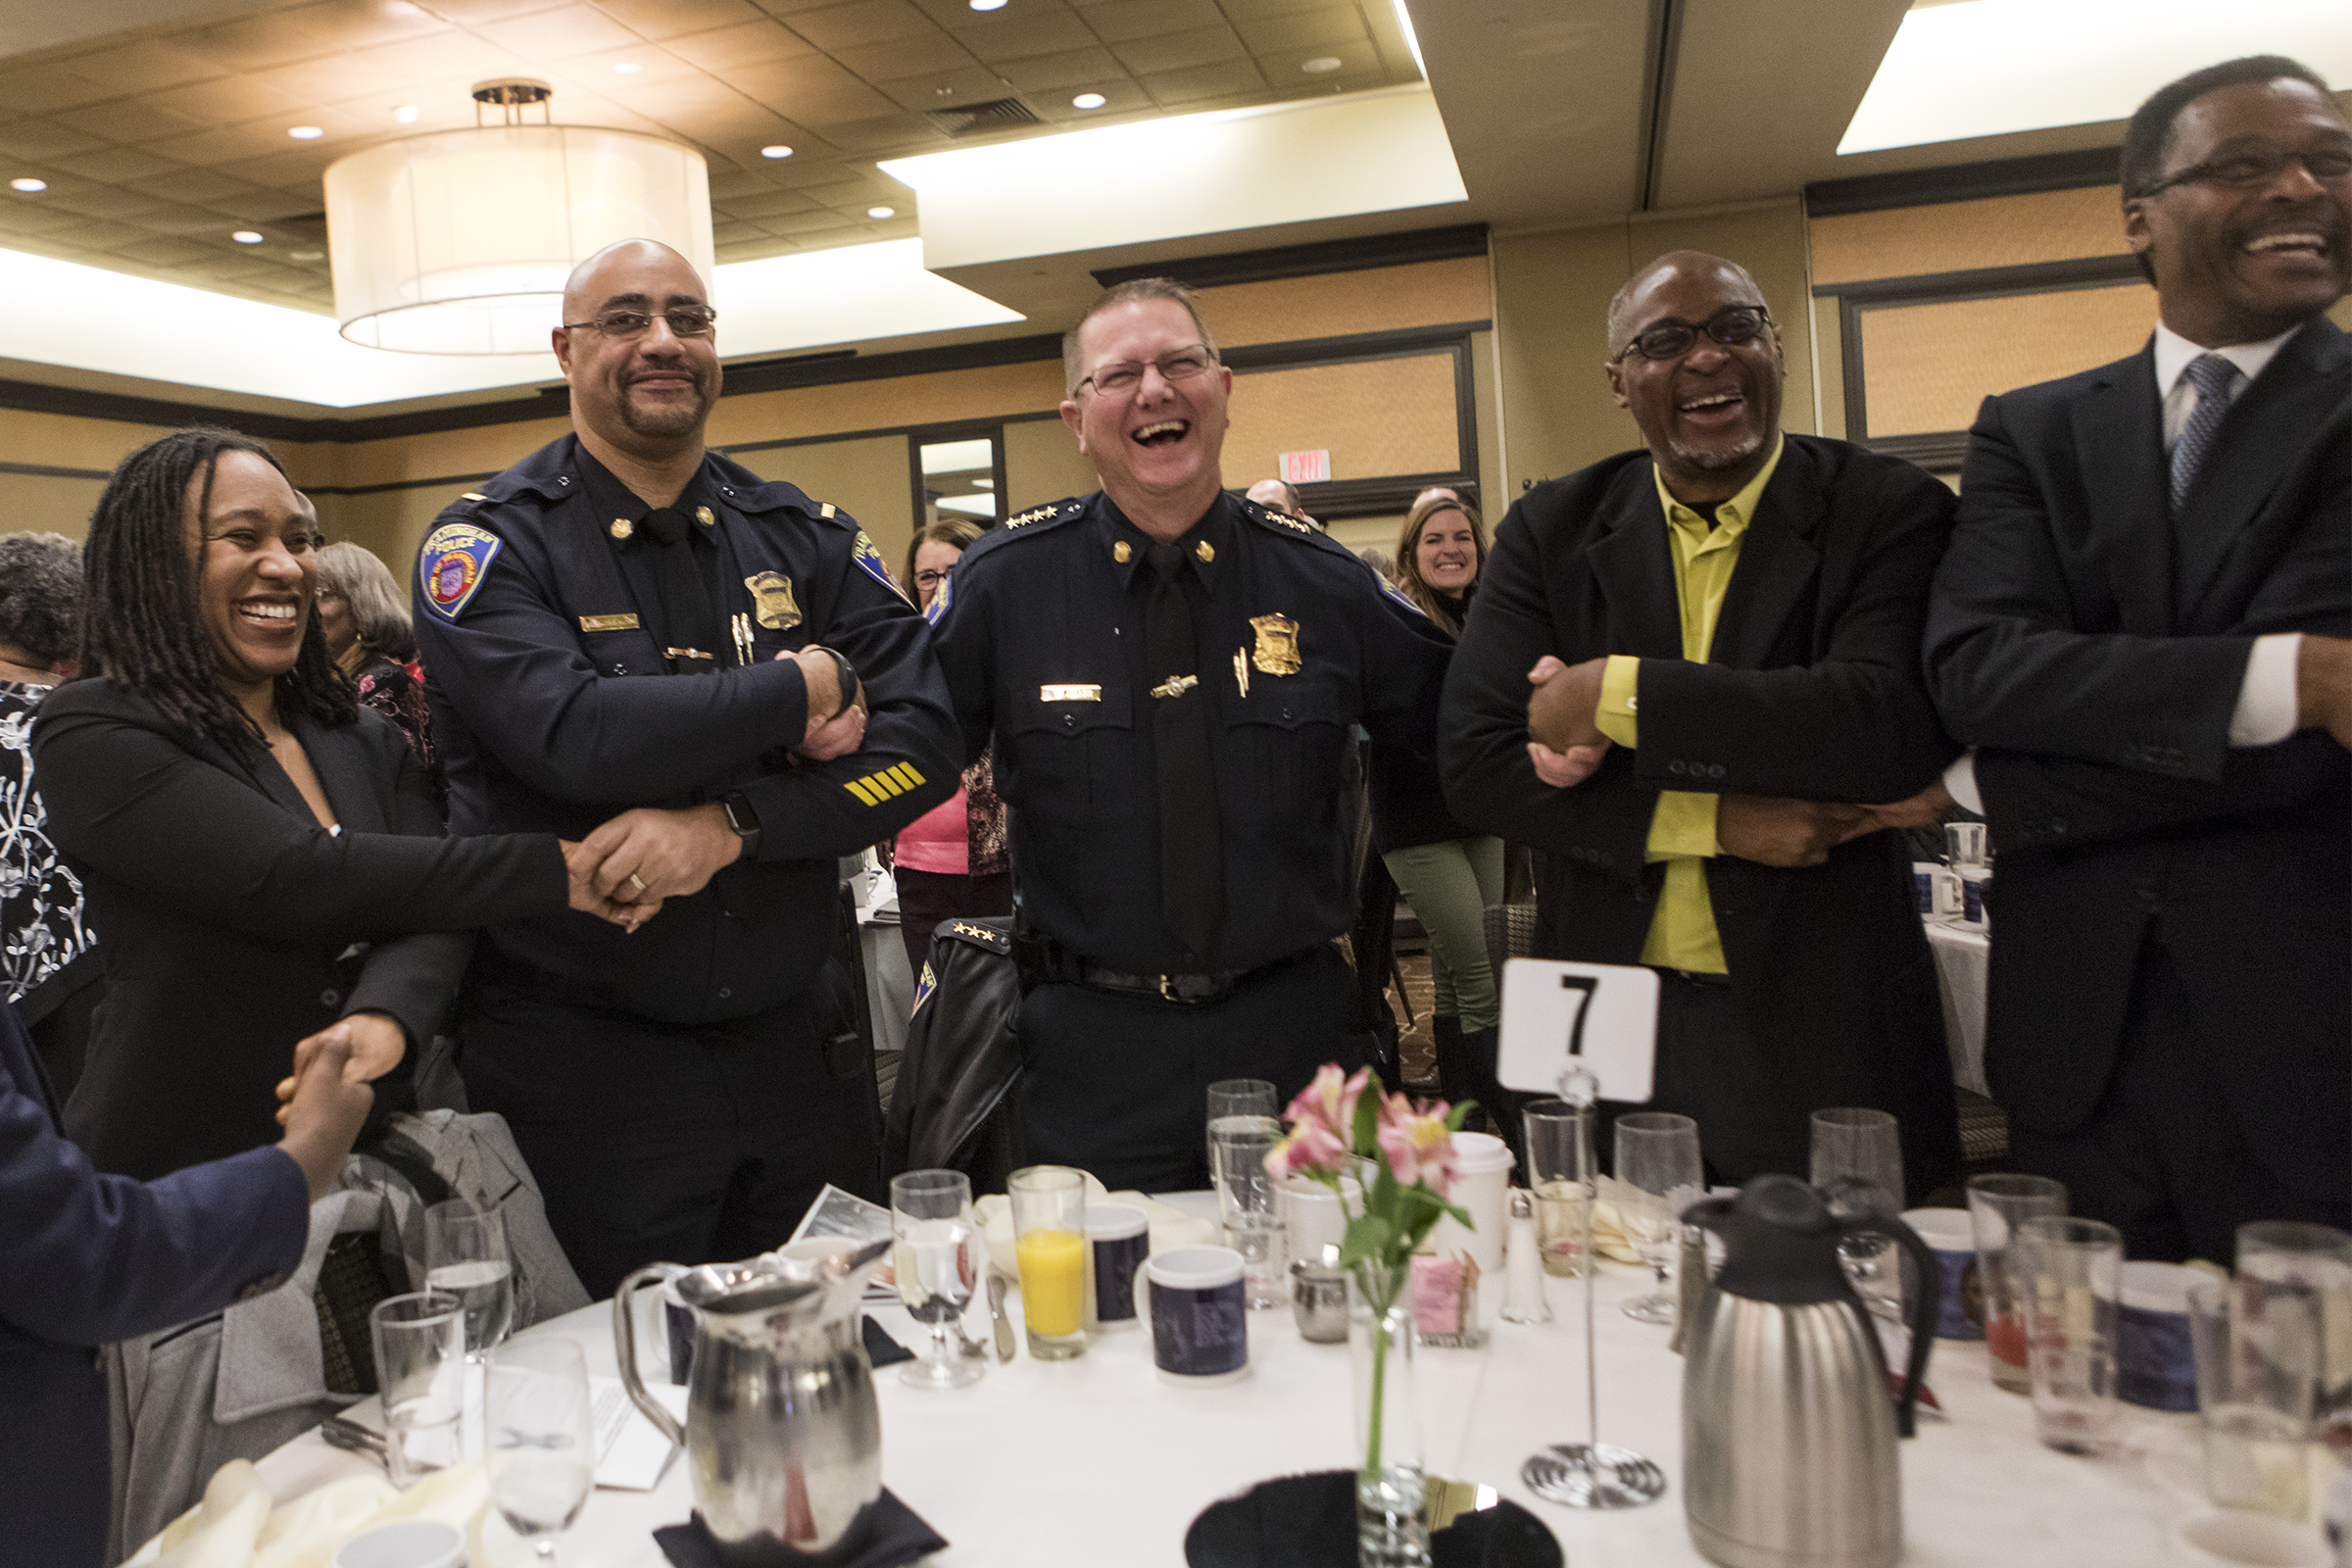 Rev. Bernadette Hickman-Maynard, Framingham Police Lieutenant Harry Wareham, Framingham Police Chief Steven Trask, WGBH News reporter Phillip Martin and Dr. John Silvanus Wilson, Jr. link arms for the closing benediction during the 32nd annual Dr. Martin Luther King, Jr. Memorial Breakfast hosted by the Greater Framingham Community Church at Verve Crowne Plaza on January 21, 2019.